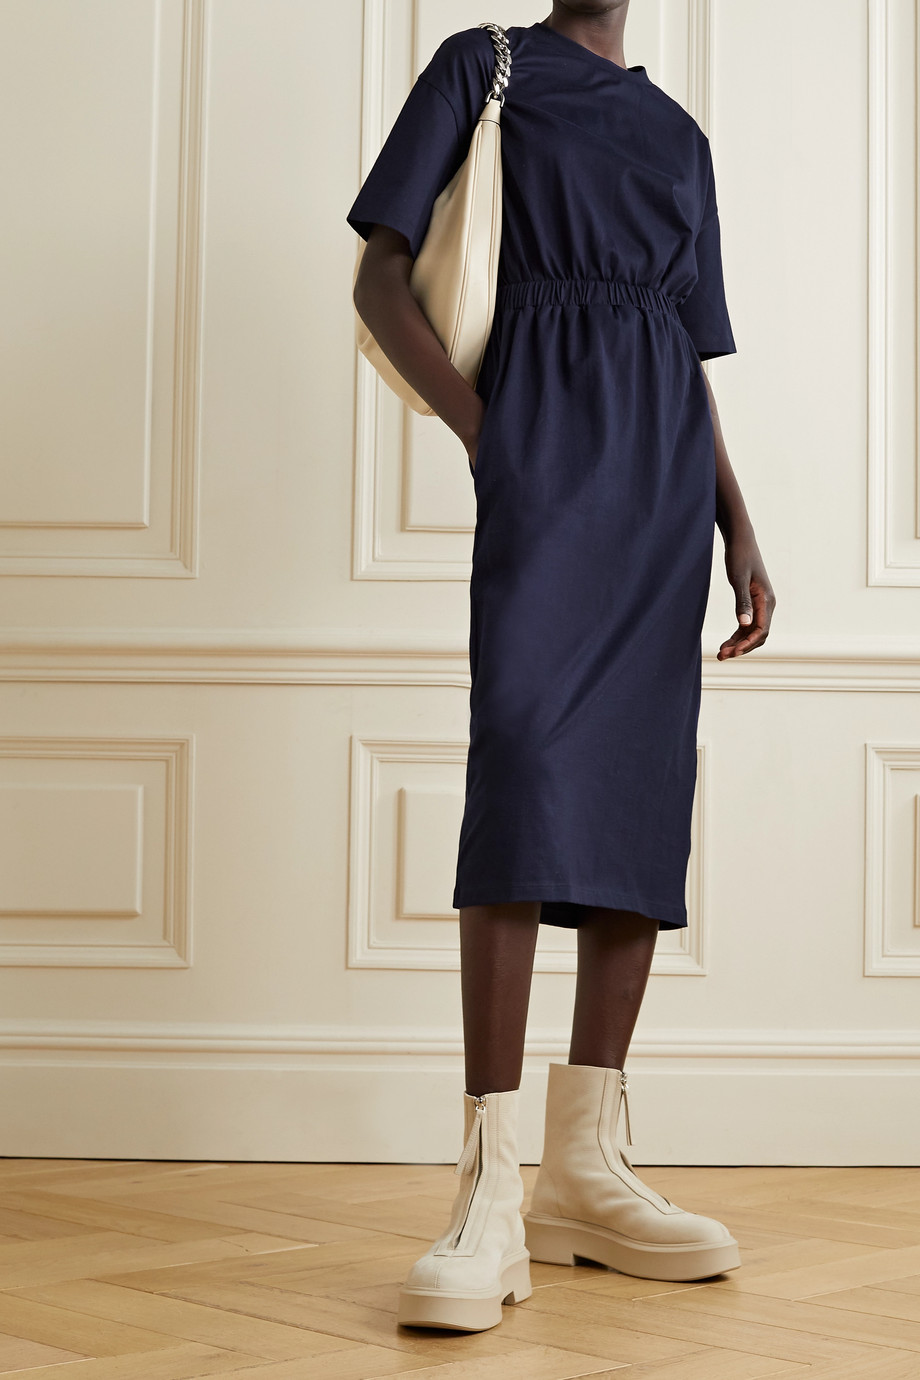 NINETY PERCENT + NET SUSTAIN gathered organic cotton-jersey midi dress